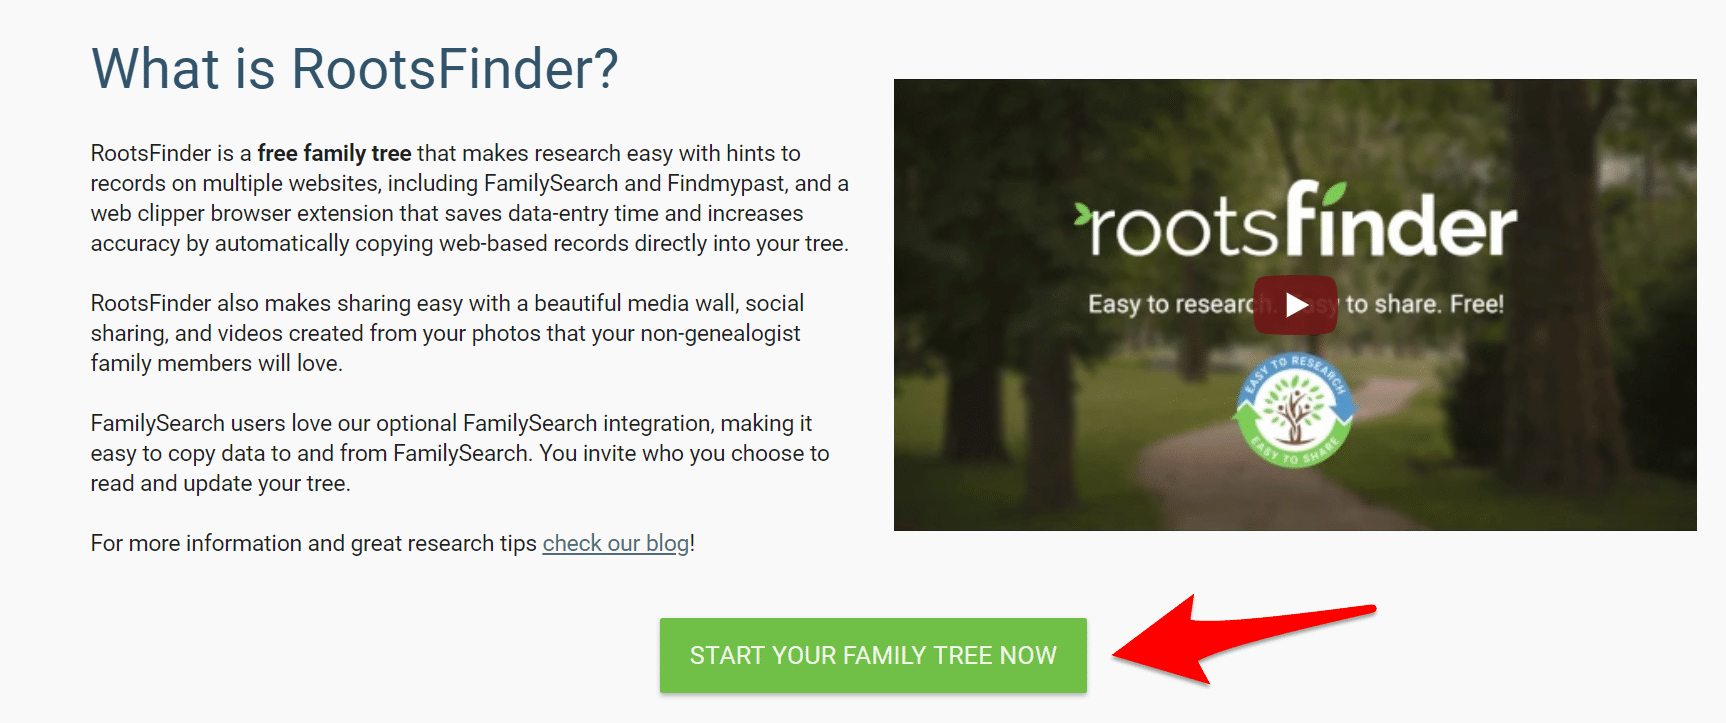 RootsFinder Start a Family Tree